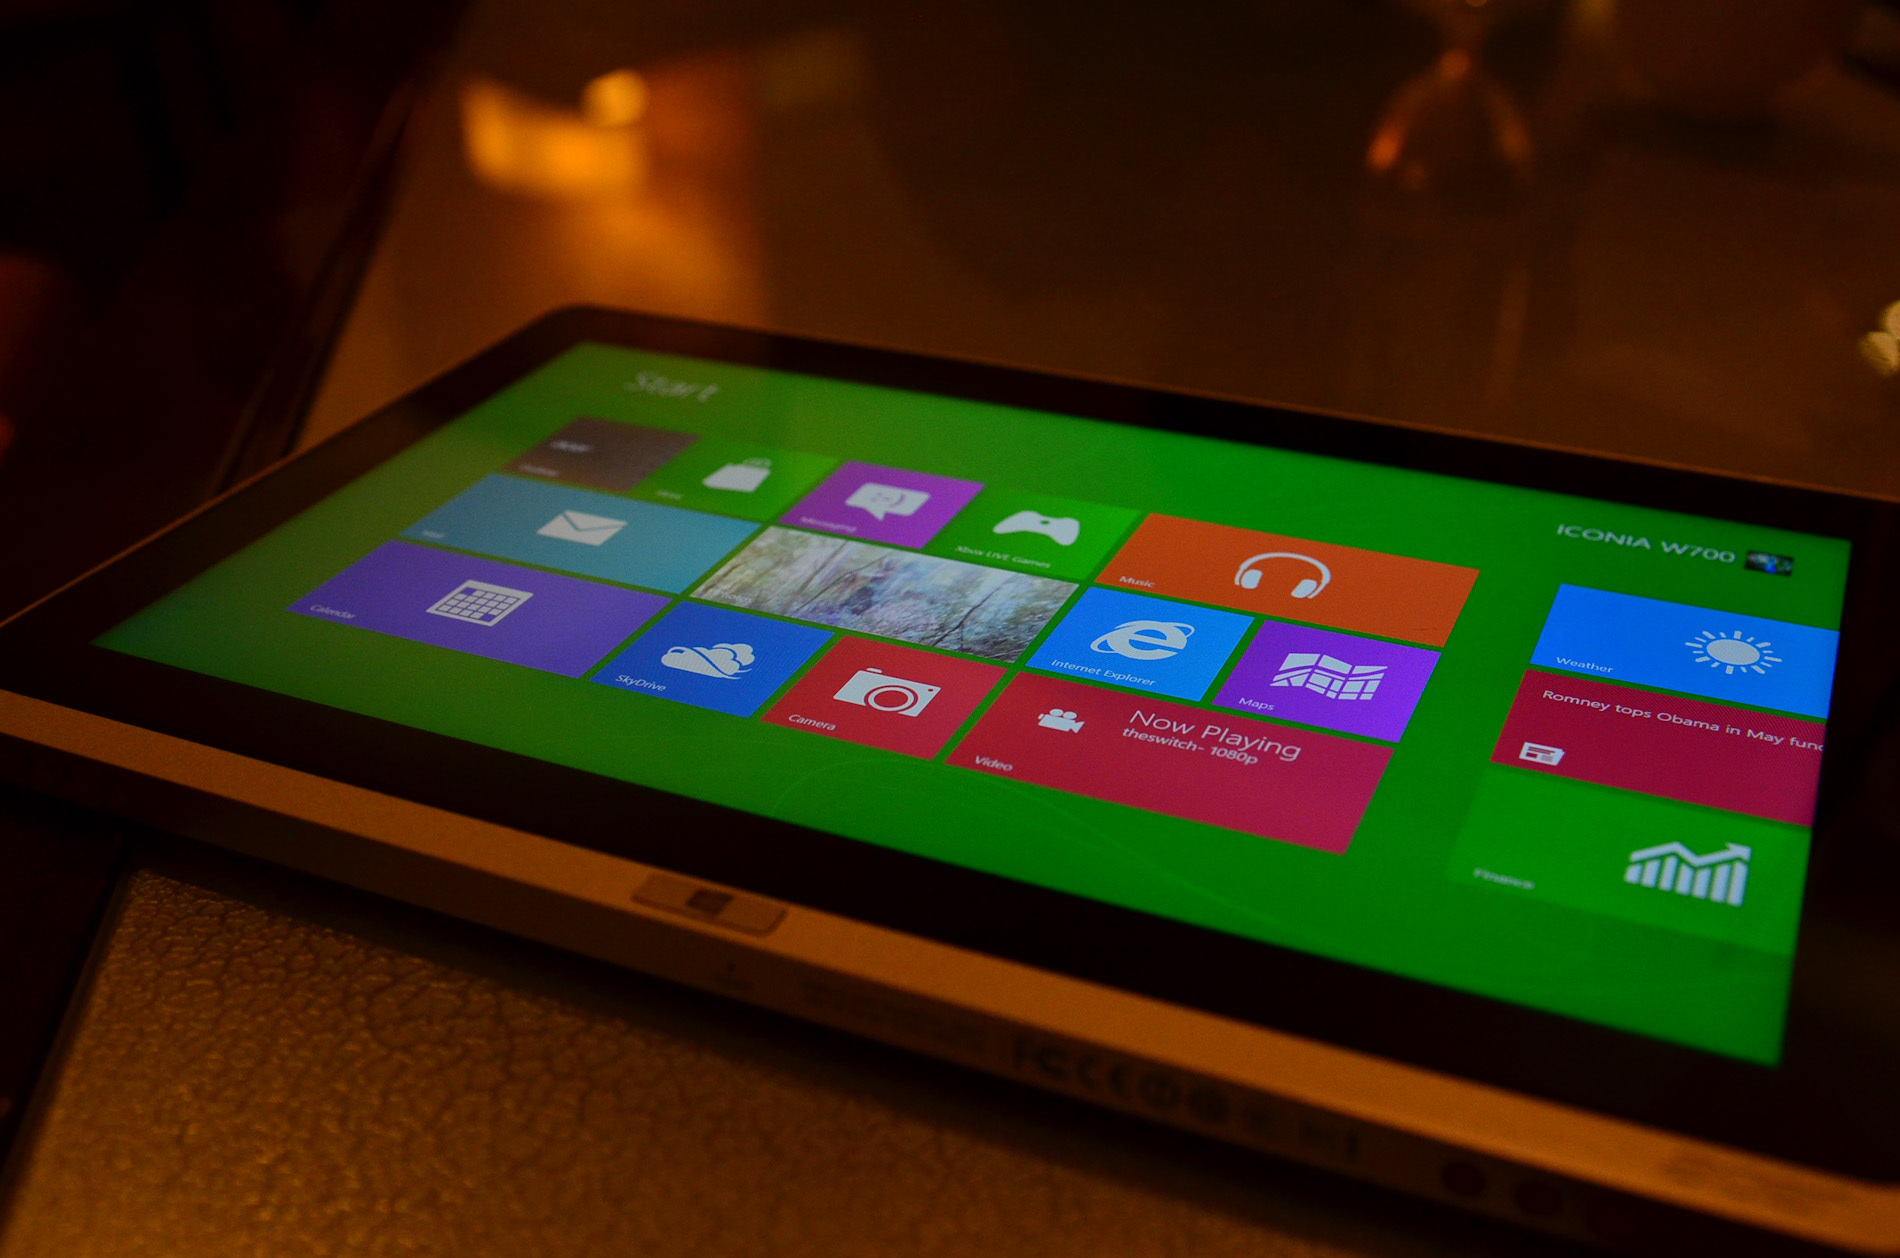 Acer's Iconia W700 Ivy Bridge Windows 8 Tablet: The Start of